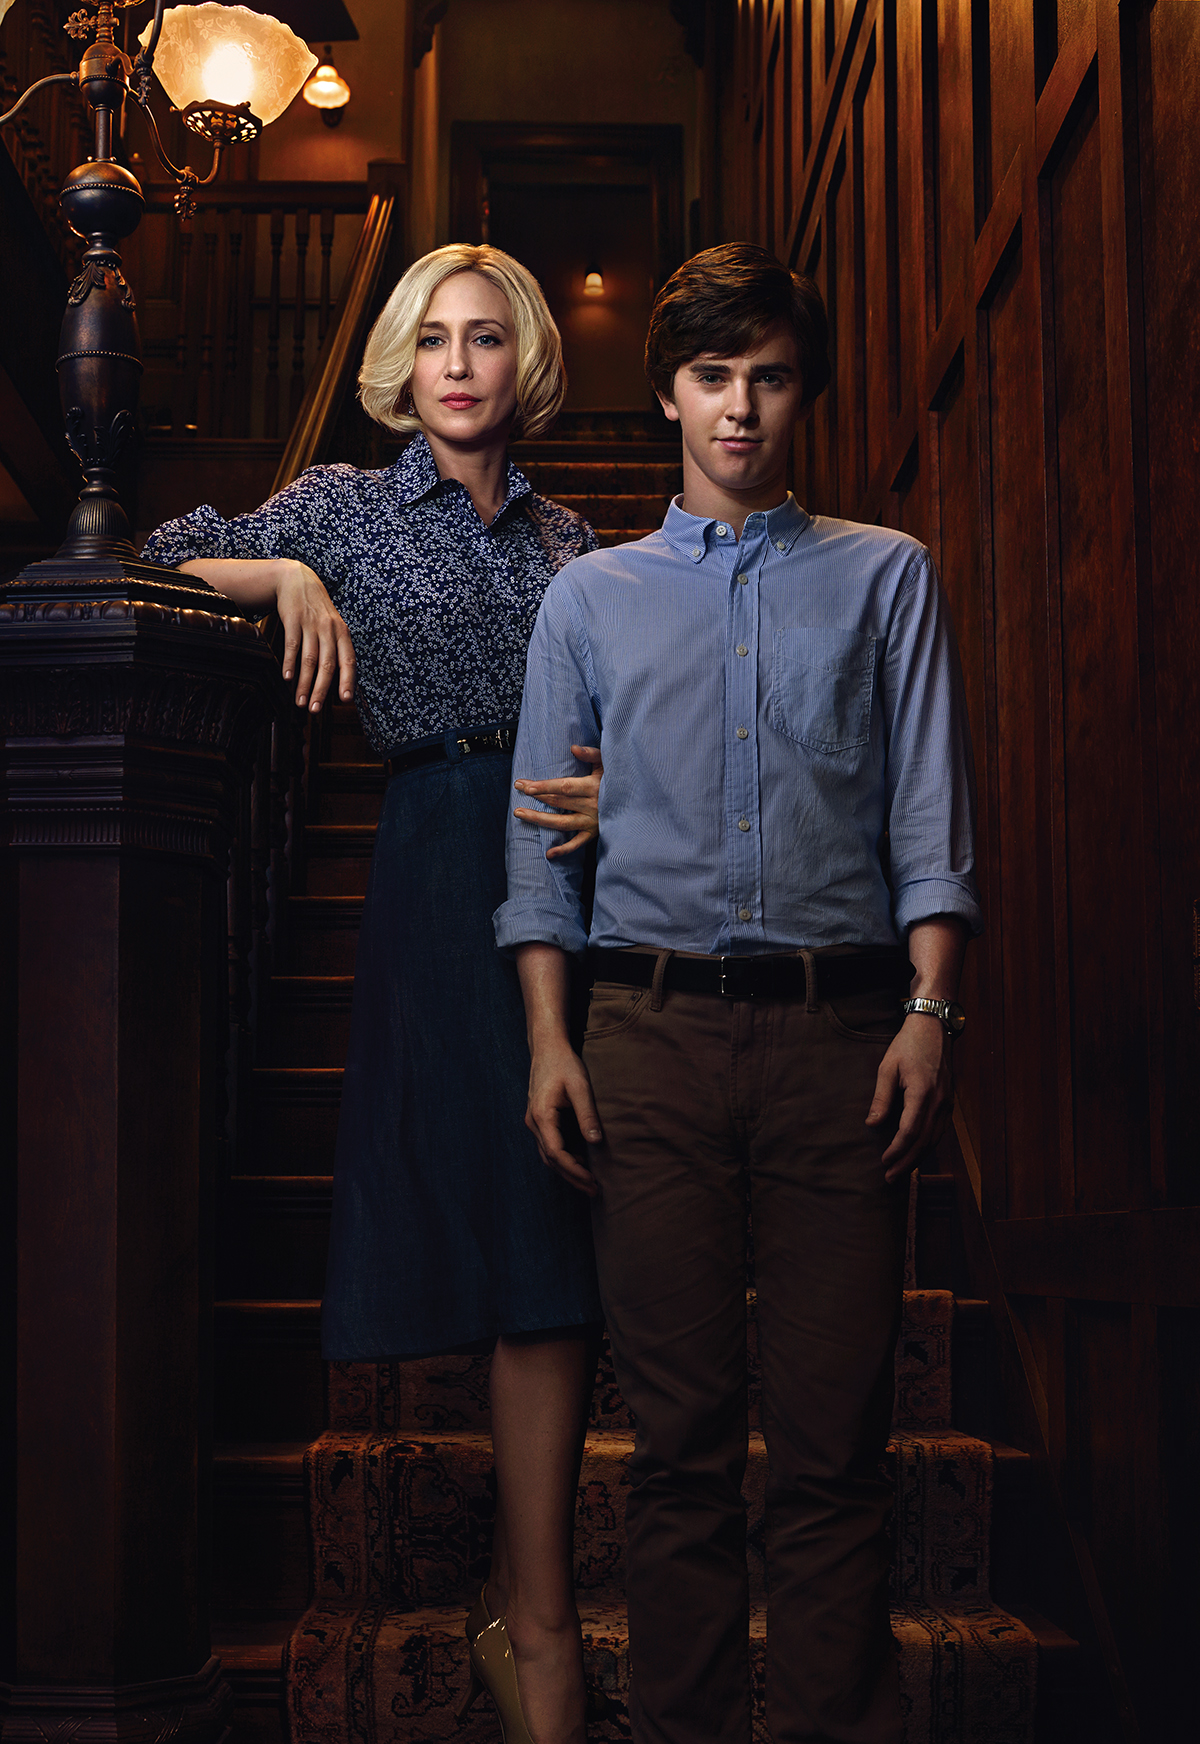 HQ Bates Motel Wallpapers | File 1532.82Kb